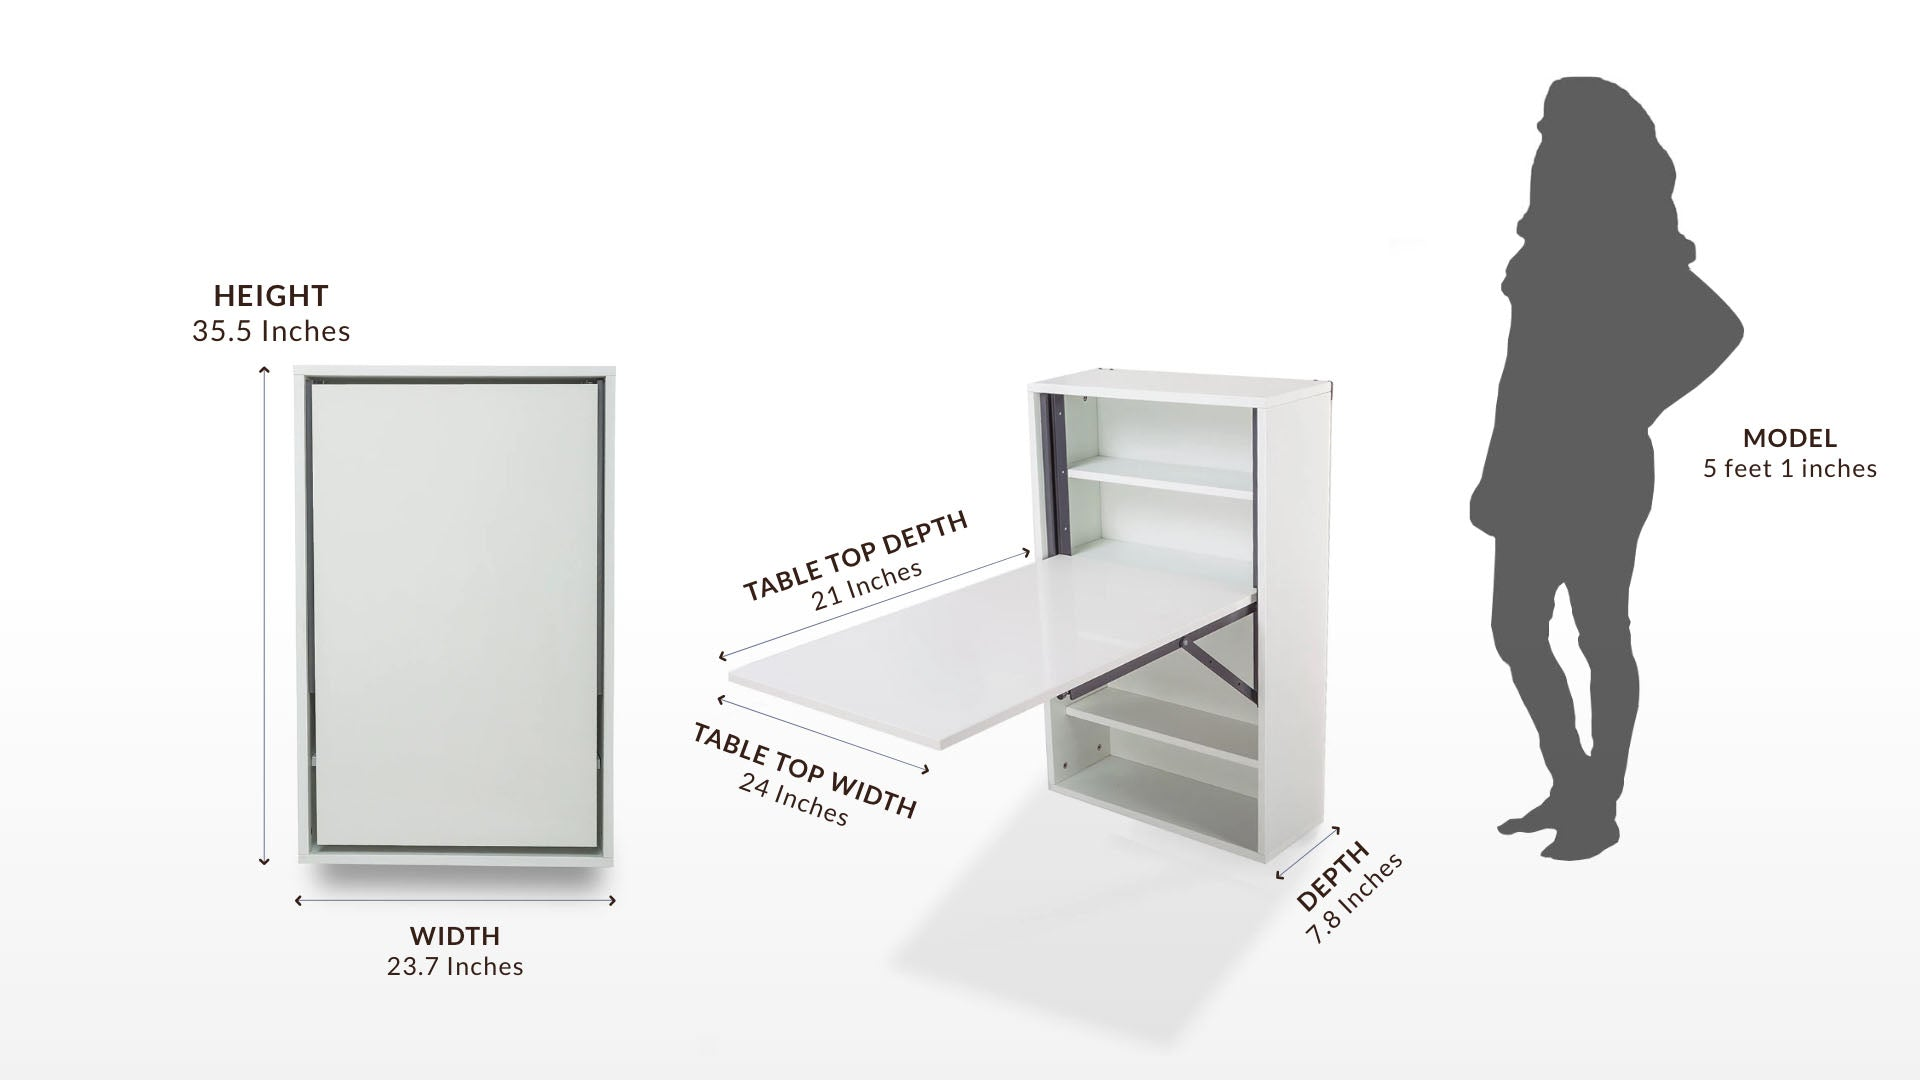 Small Multipurpose Wall Mounted Easy Slideup Table with Storage for Study/Office/Dining Table